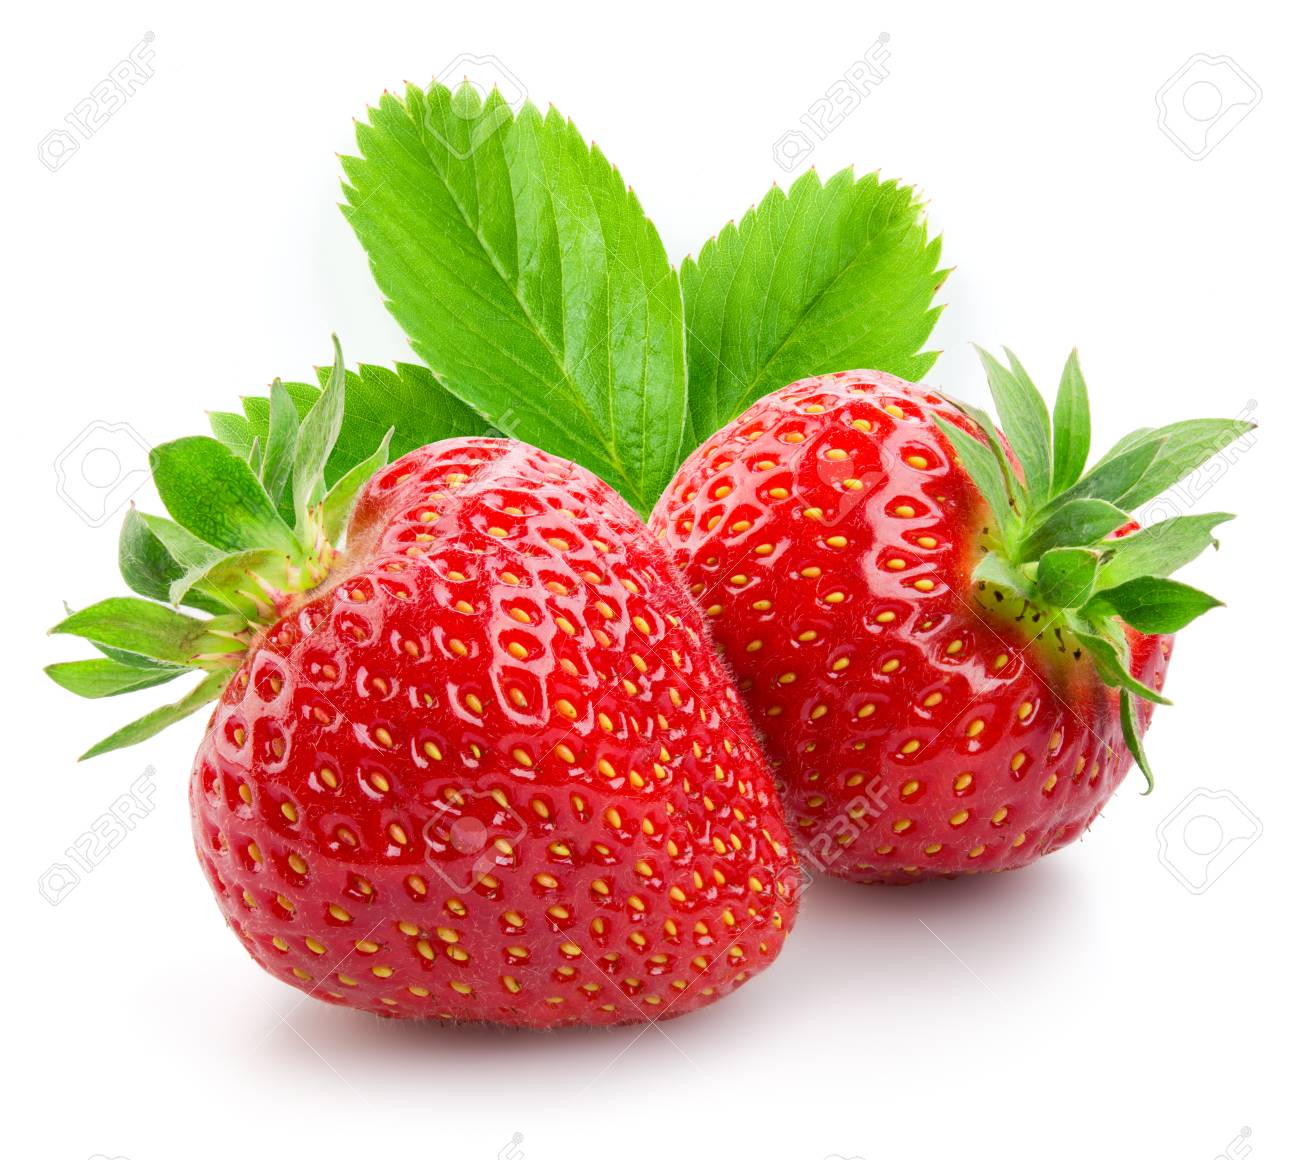 Two strawberries close up on white background - 86607299